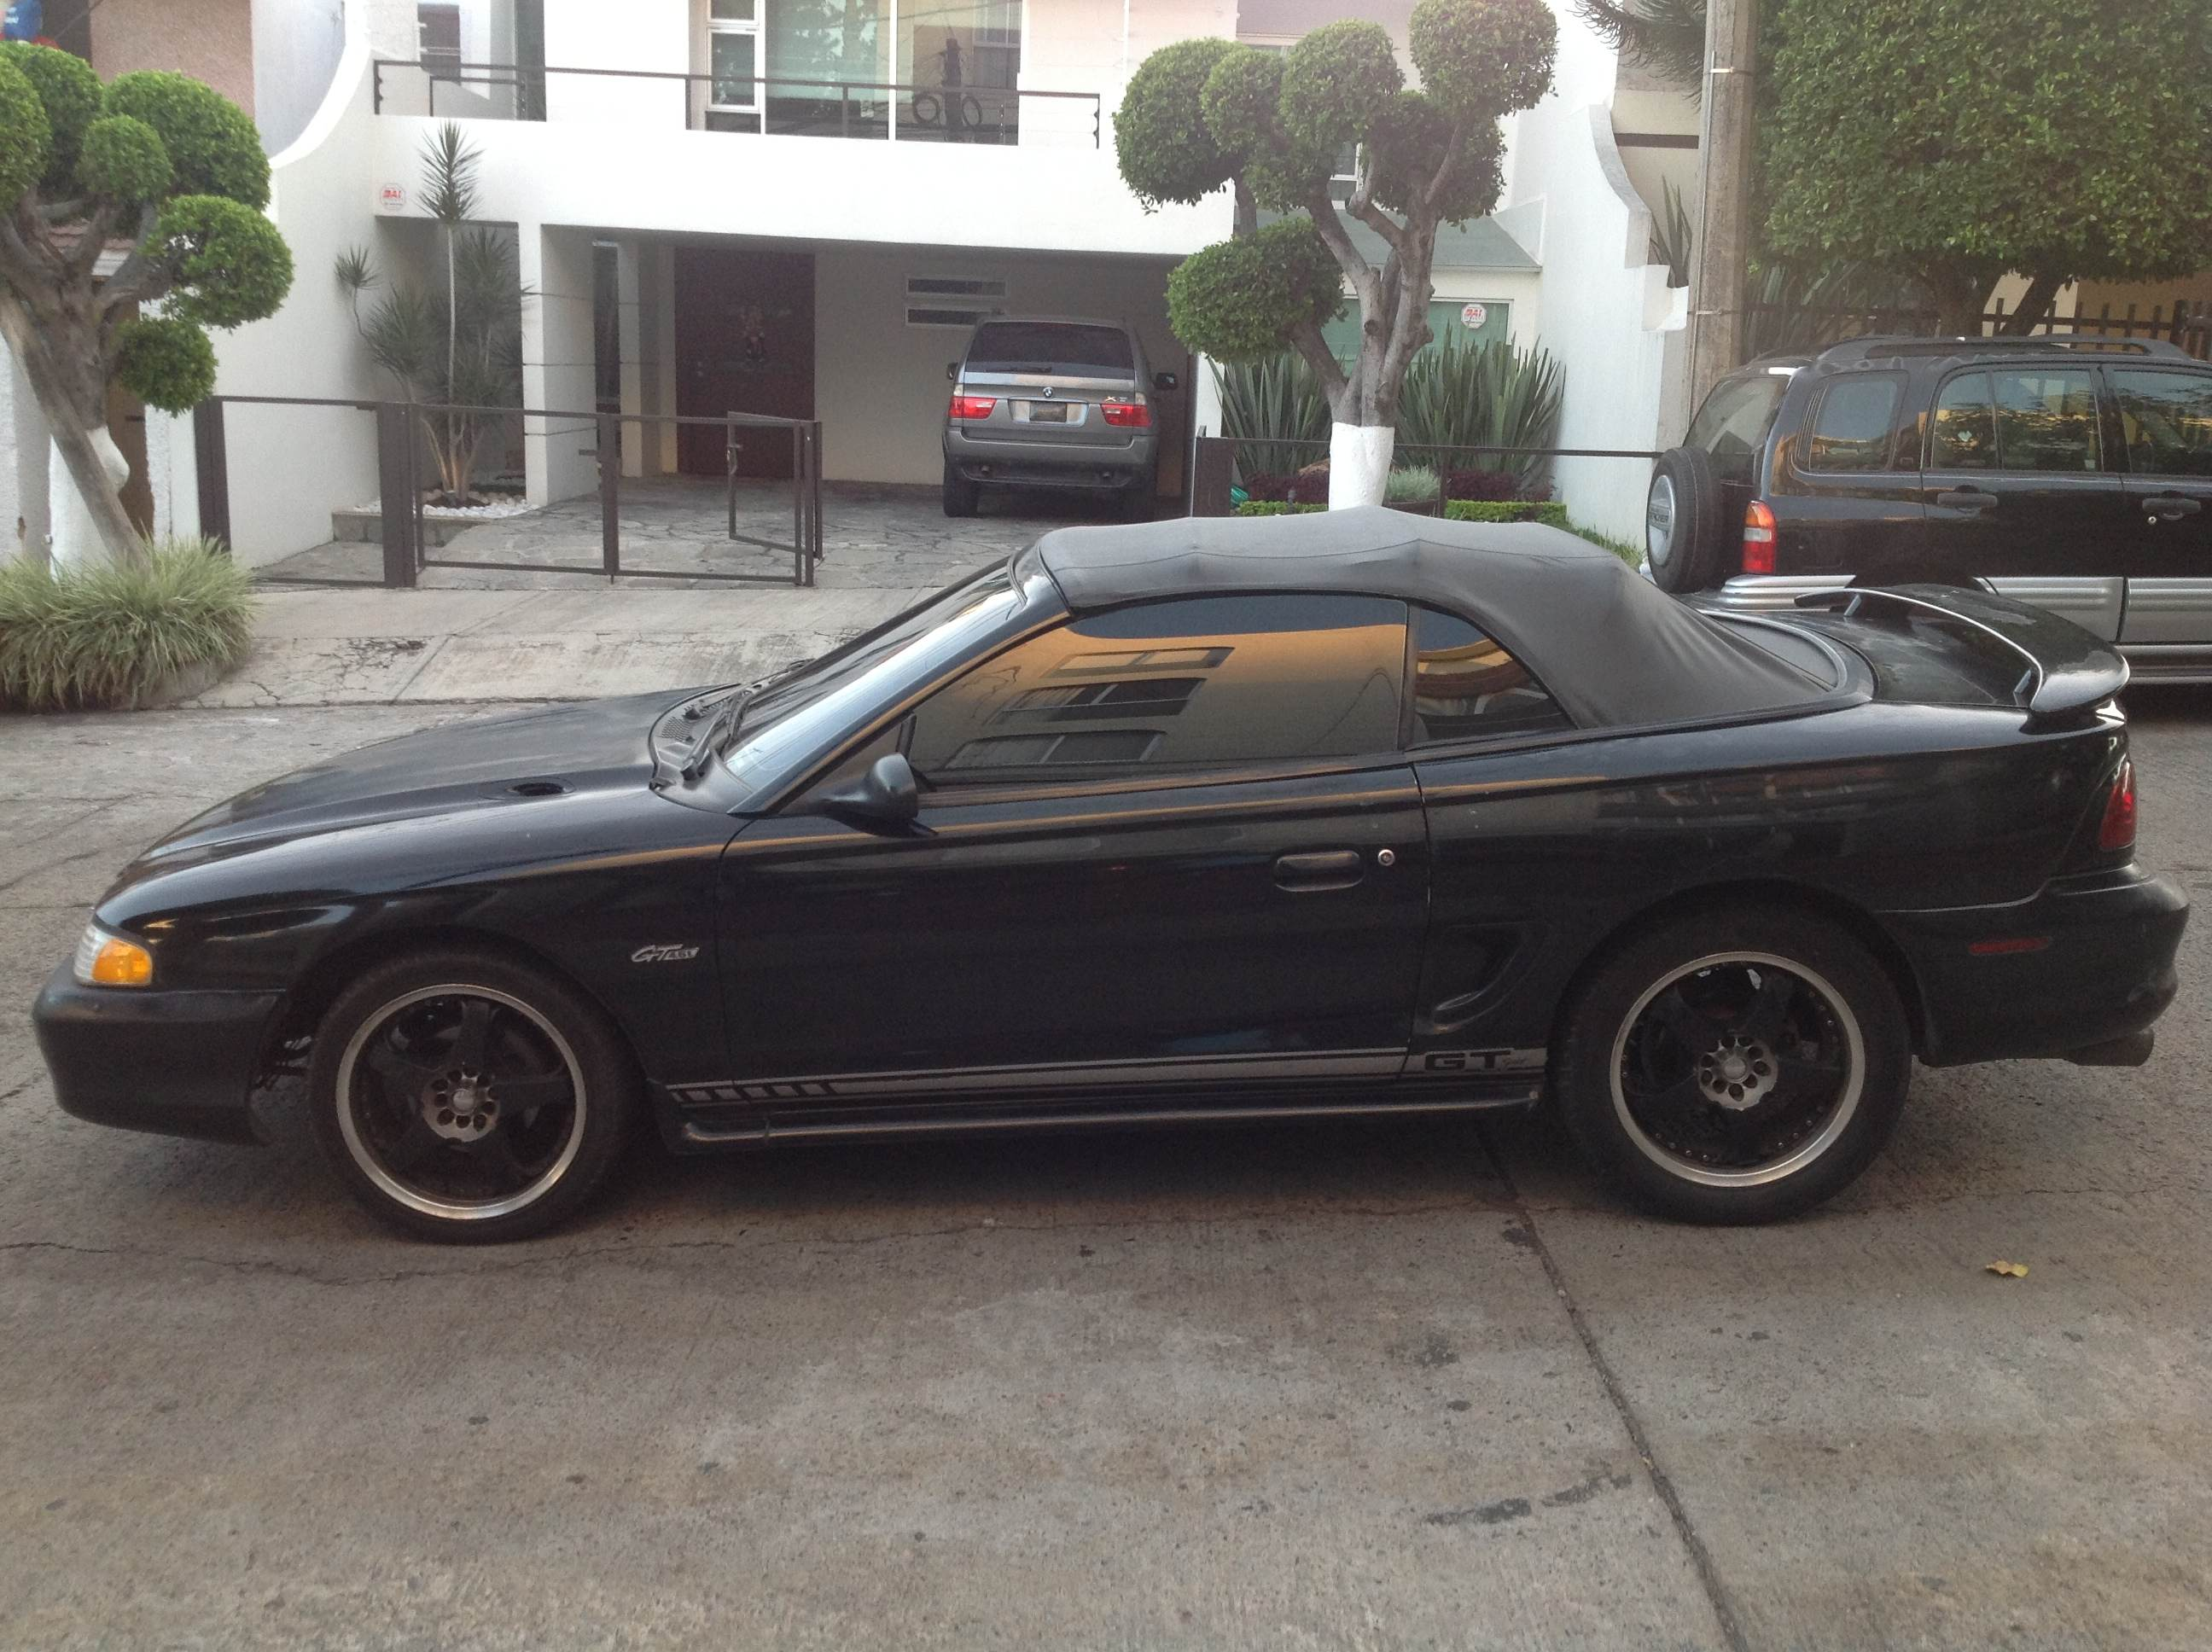 mustang gt96 convertible 2500usd uag medical school classifieds. Black Bedroom Furniture Sets. Home Design Ideas